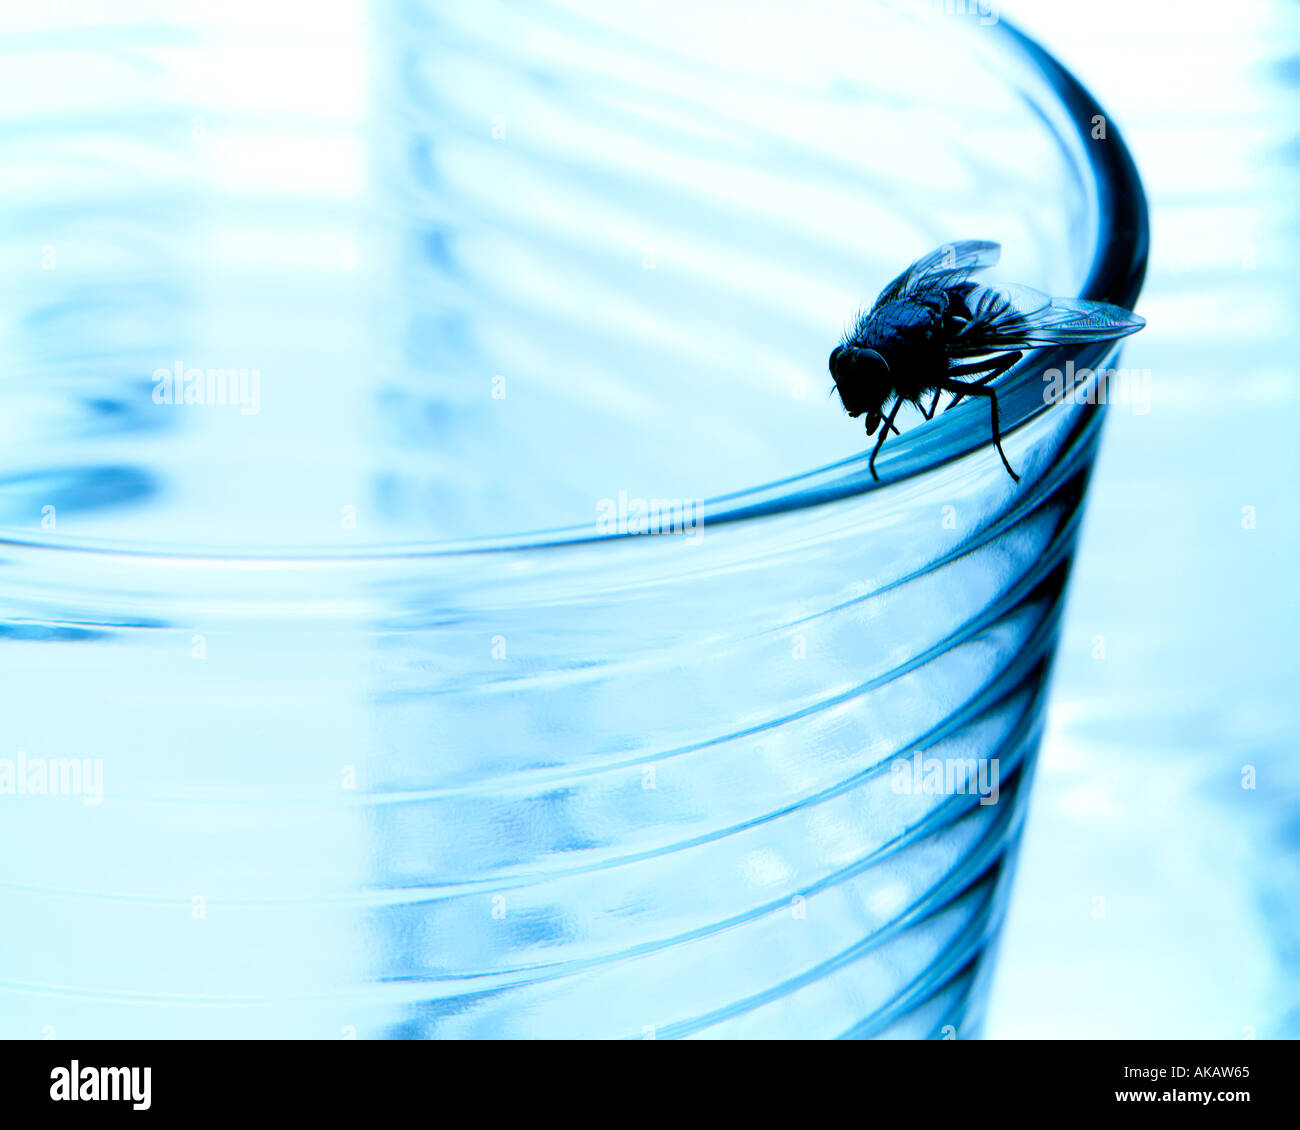 Drinking glass and a house fly - Stock Image